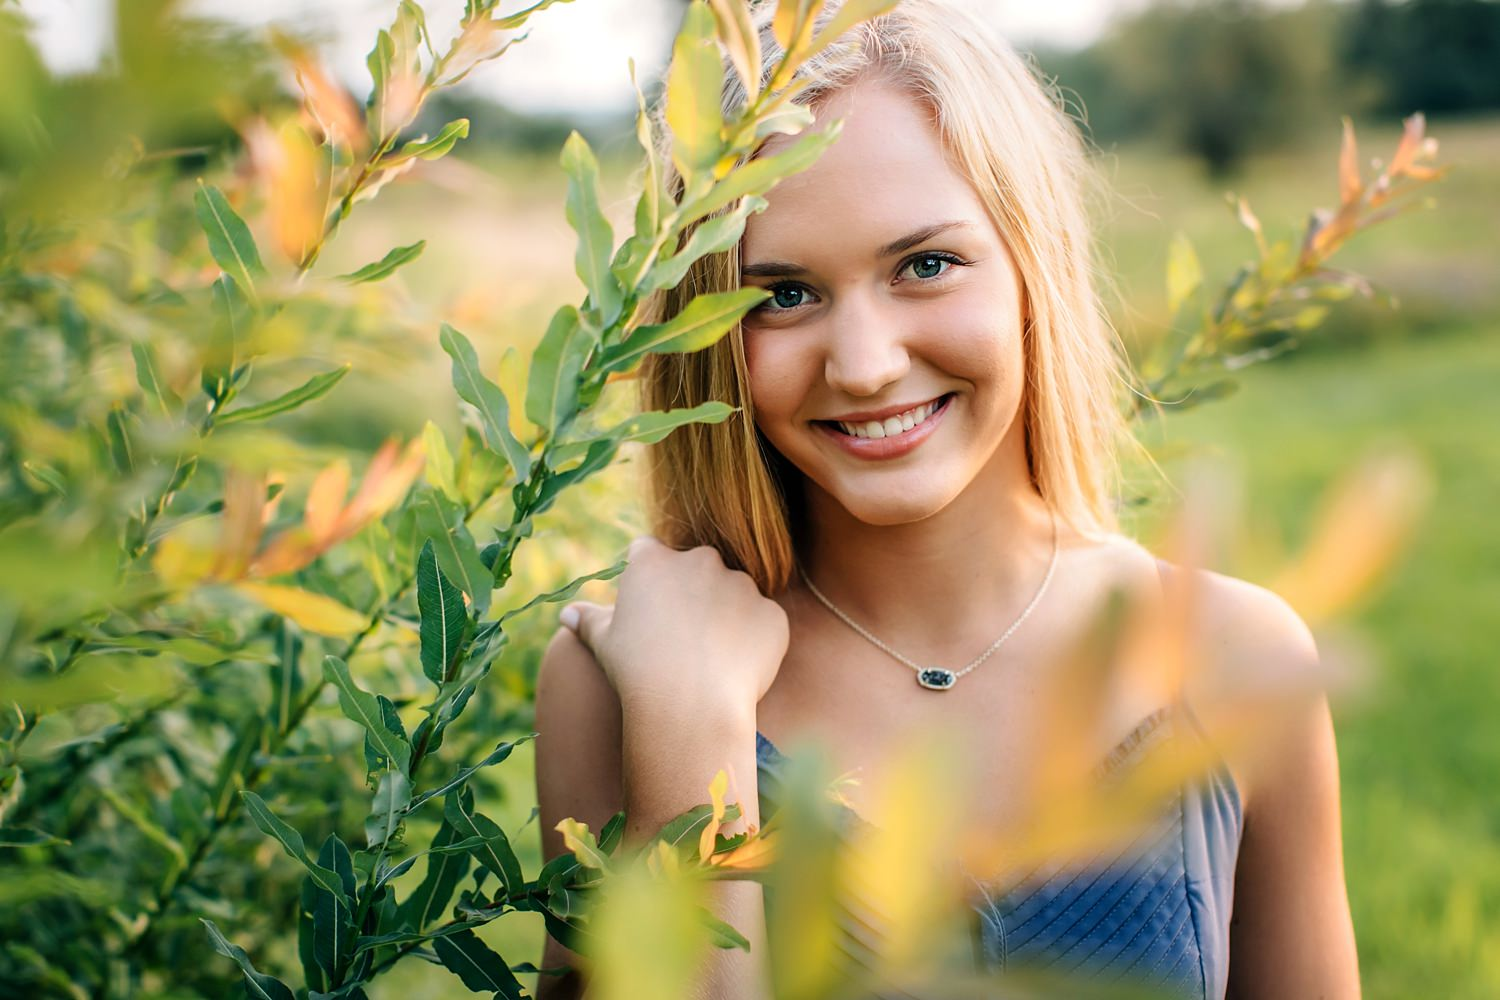 girl smiling in garden posing for natural senior portraits outside